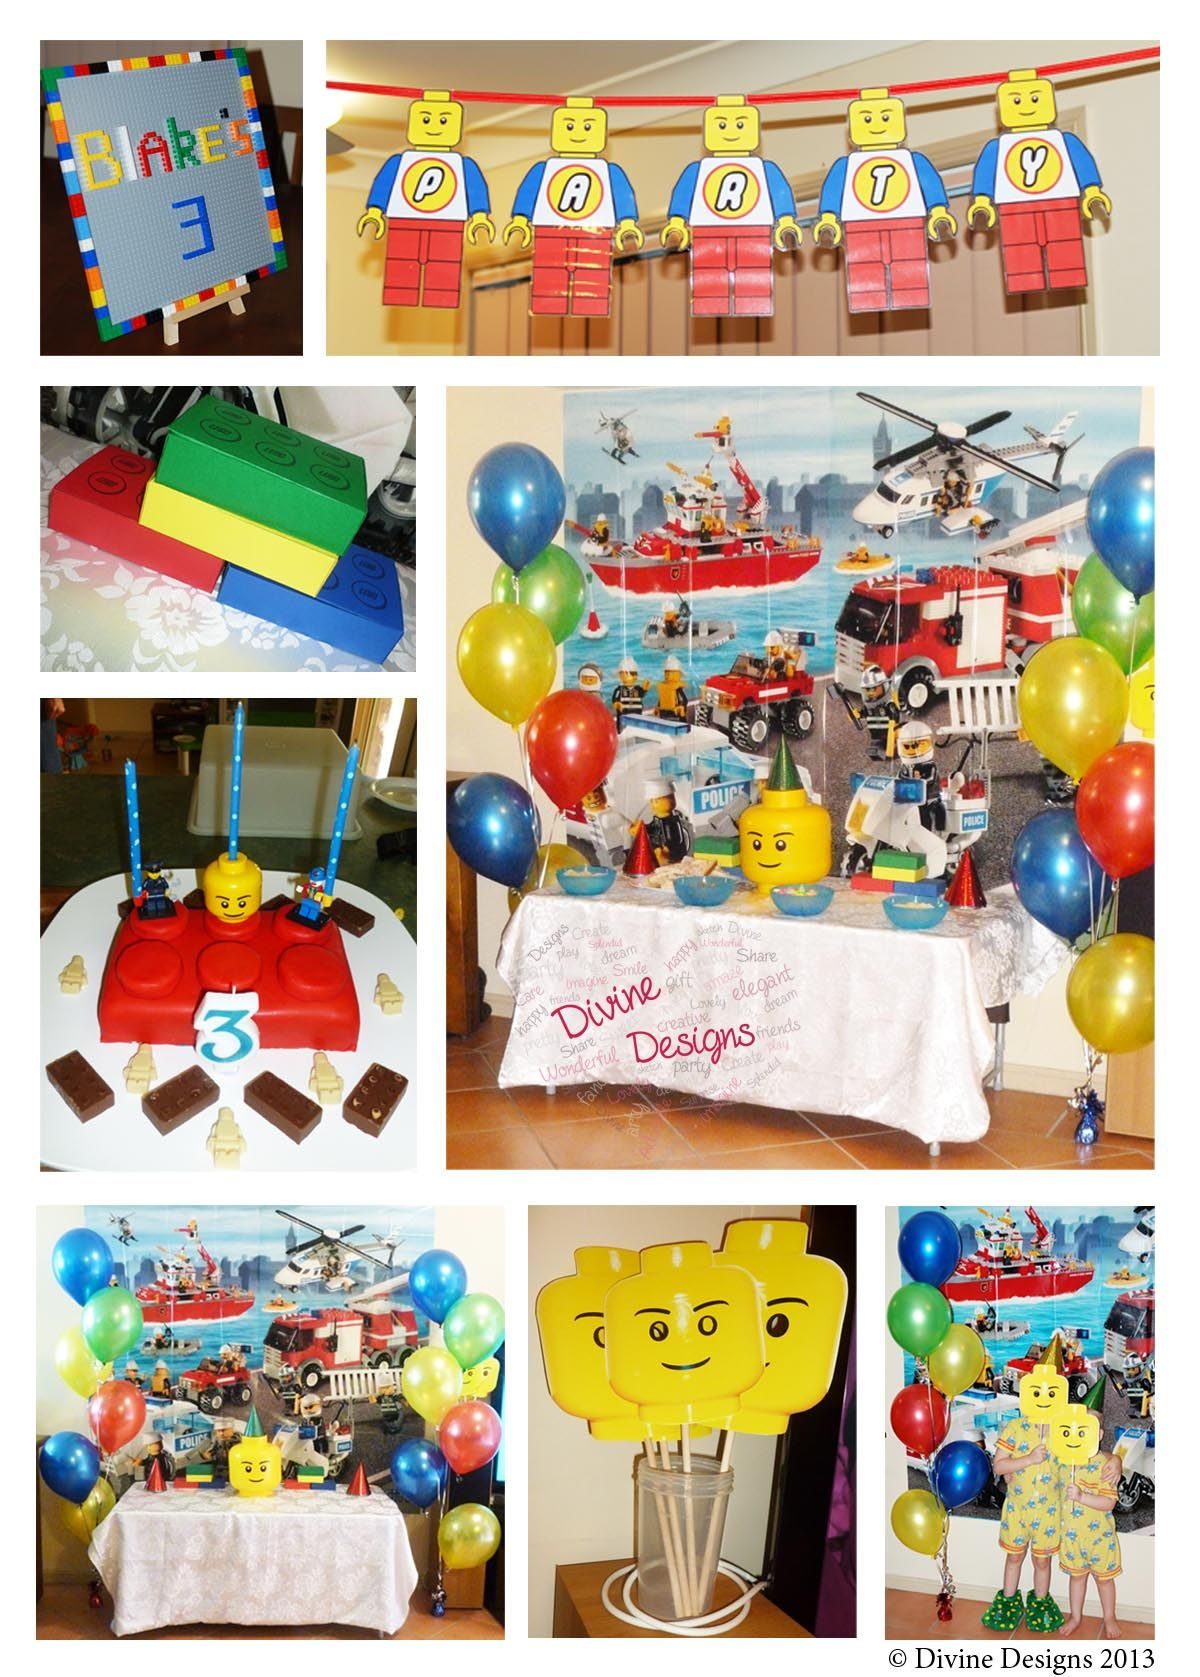 Lego Party Decorations and Favours  © Divine Designs 2013  Goodie box template by www.deliacreates.blogspot.com